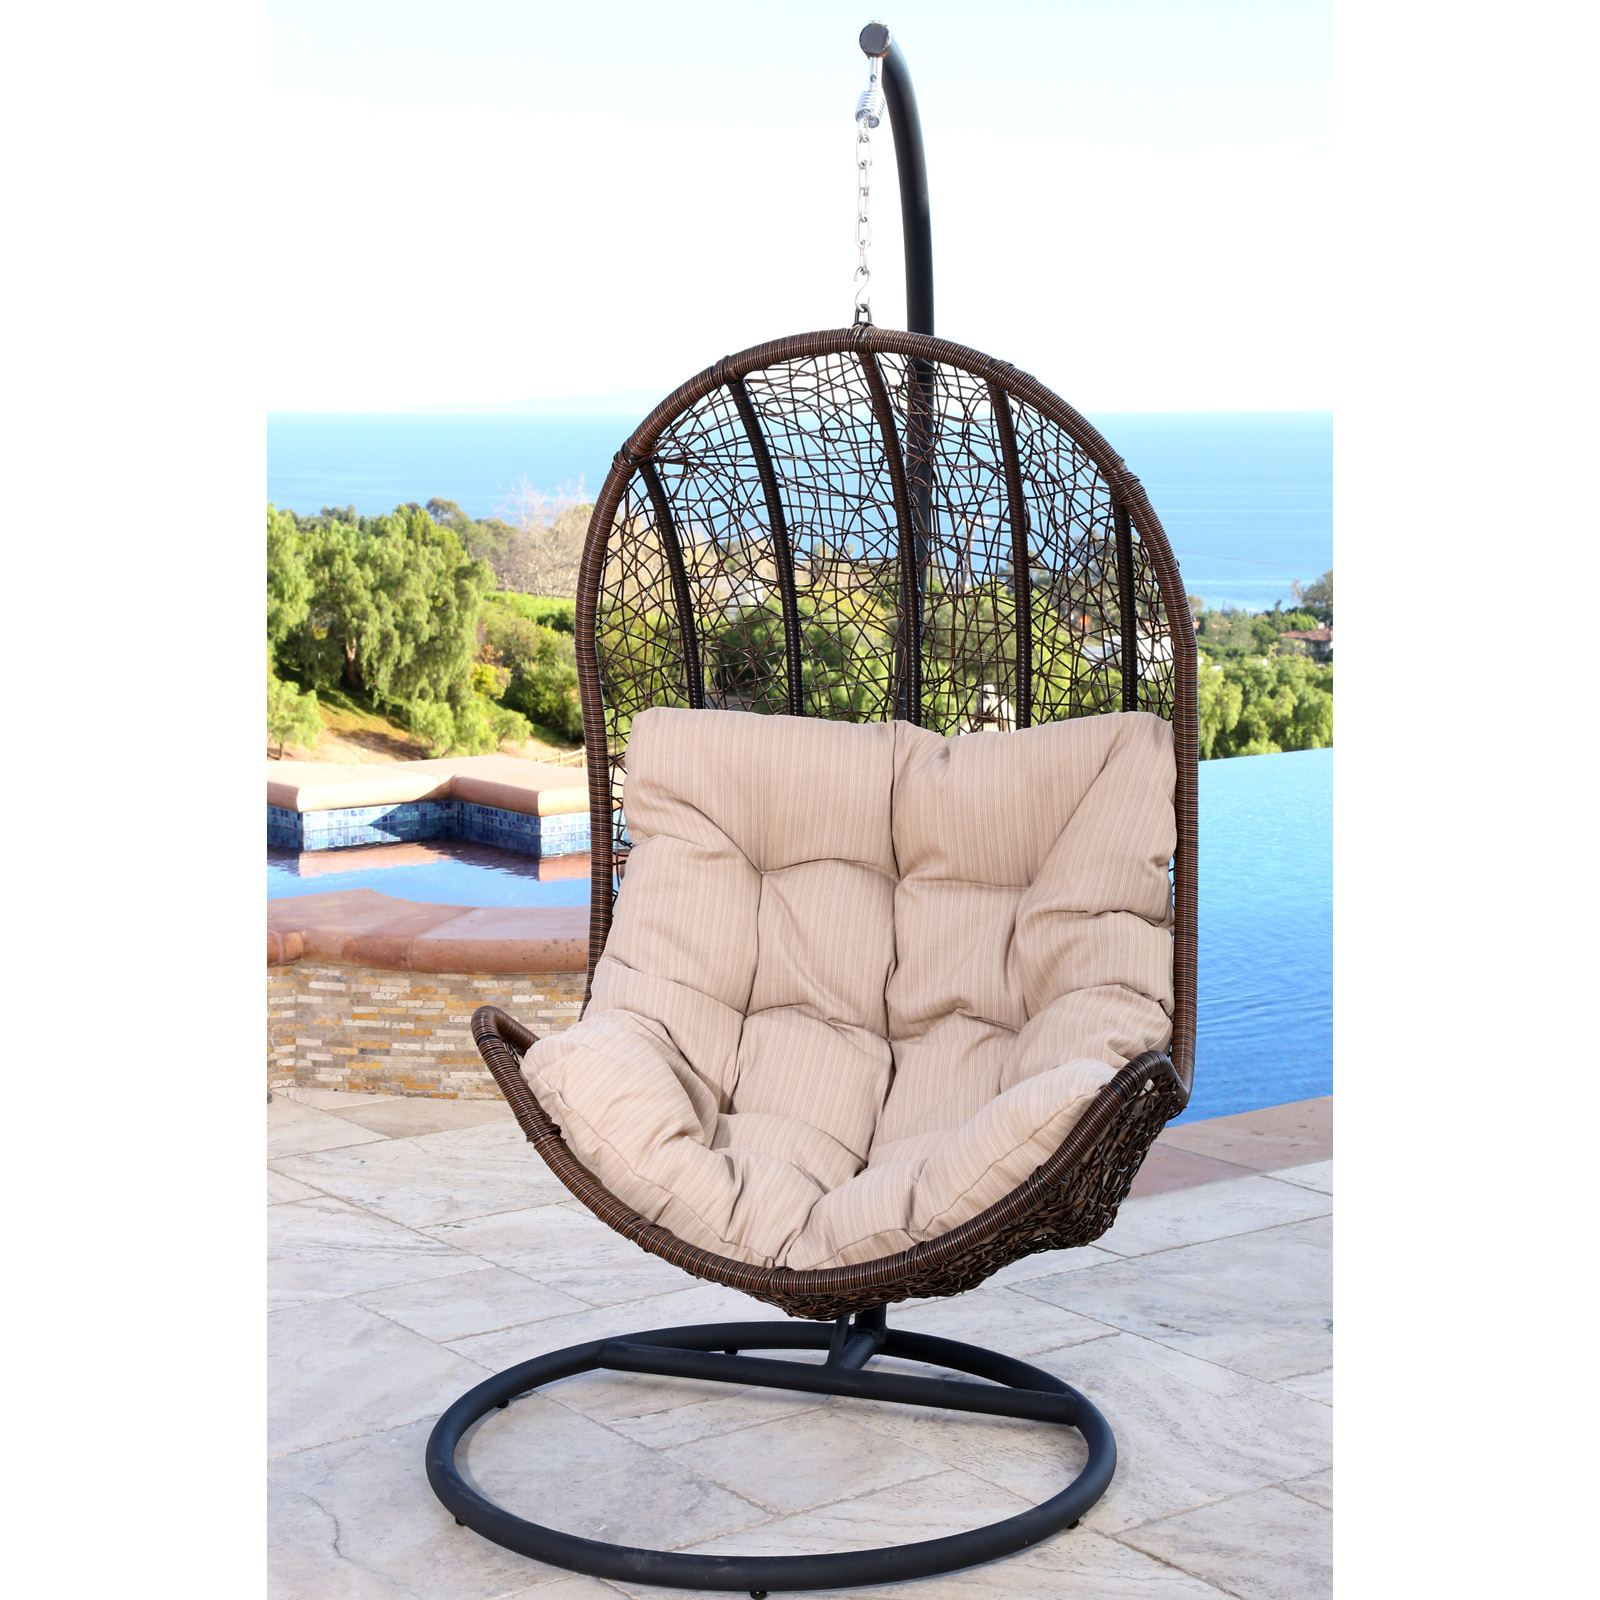 Abbyson Living Cate Outdoor Wicker Egg Shaped Swing Chair